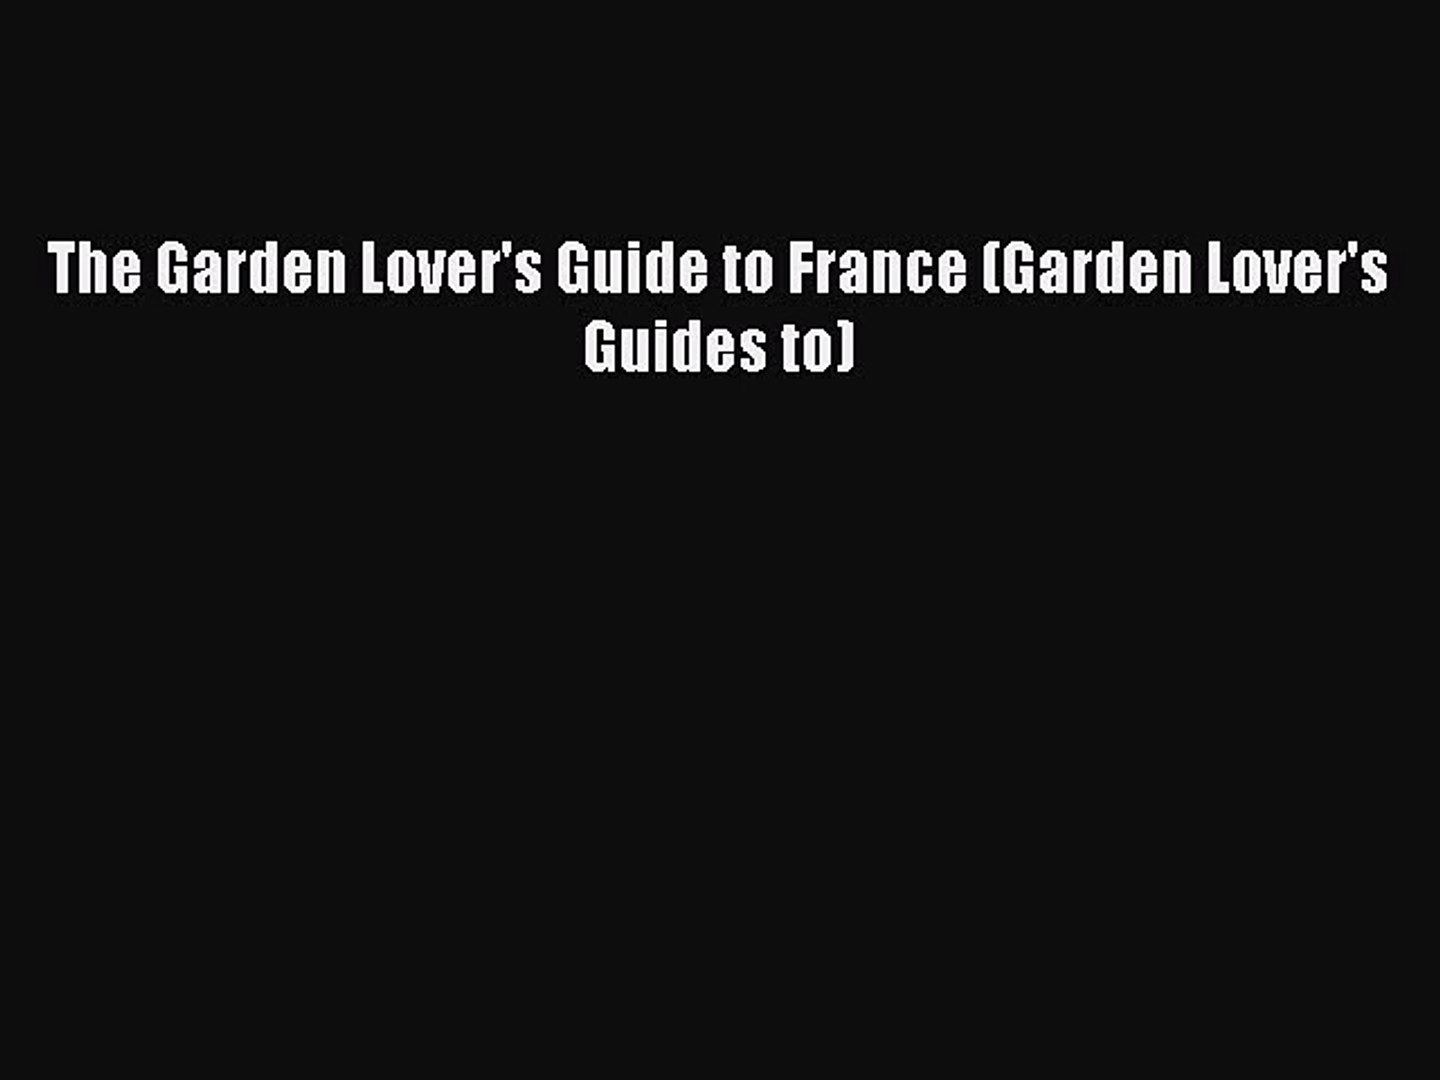 PDF Download The Garden Lover's Guide to France (Garden Lover's Guides to) Read Full Ebook